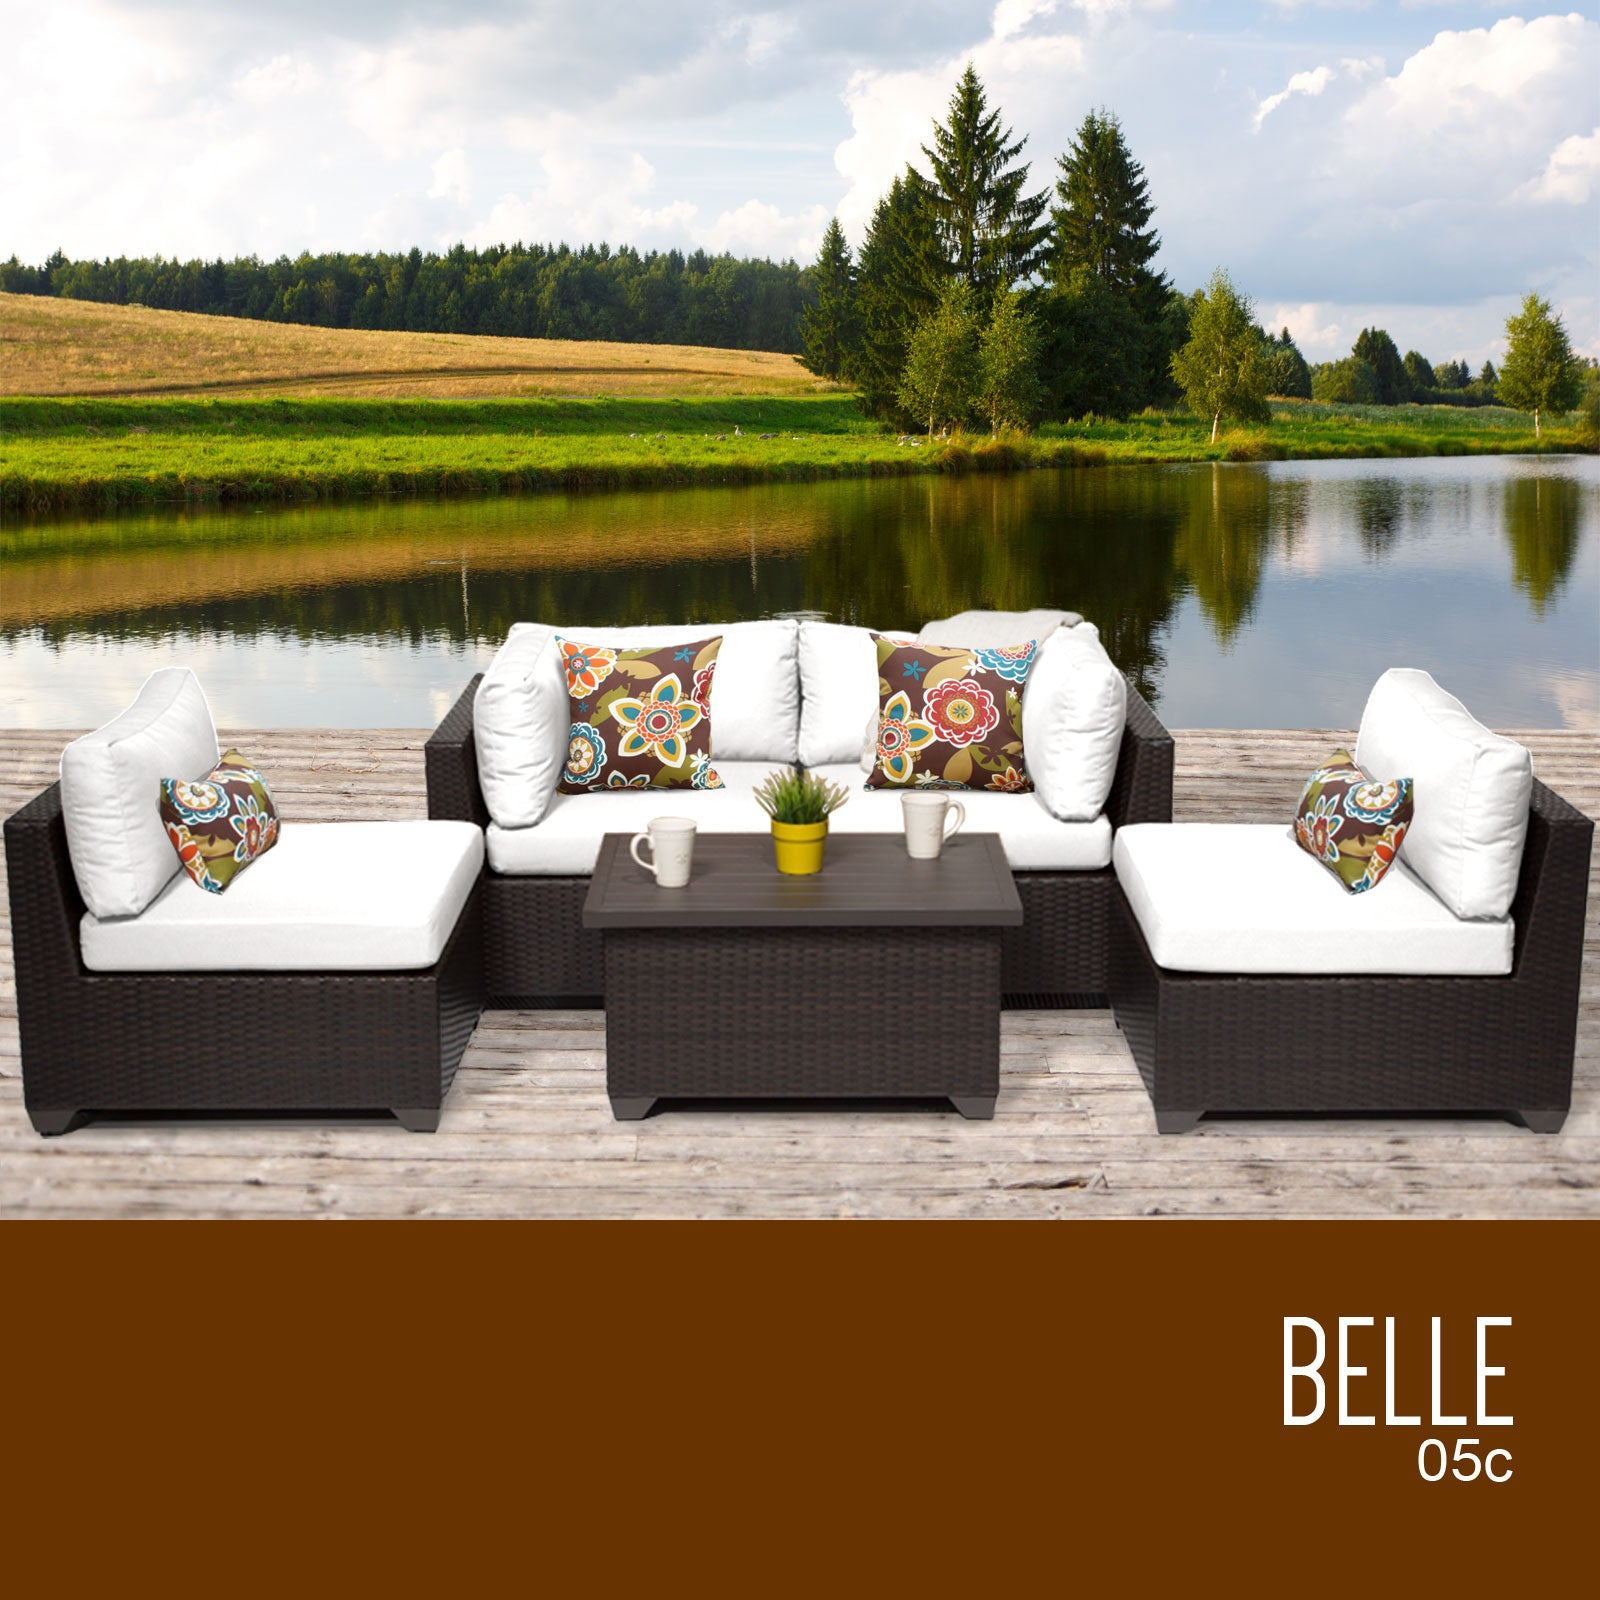 Belle 5 Piece Outdoor Wicker Patio Furniture Set 05c Grayburd